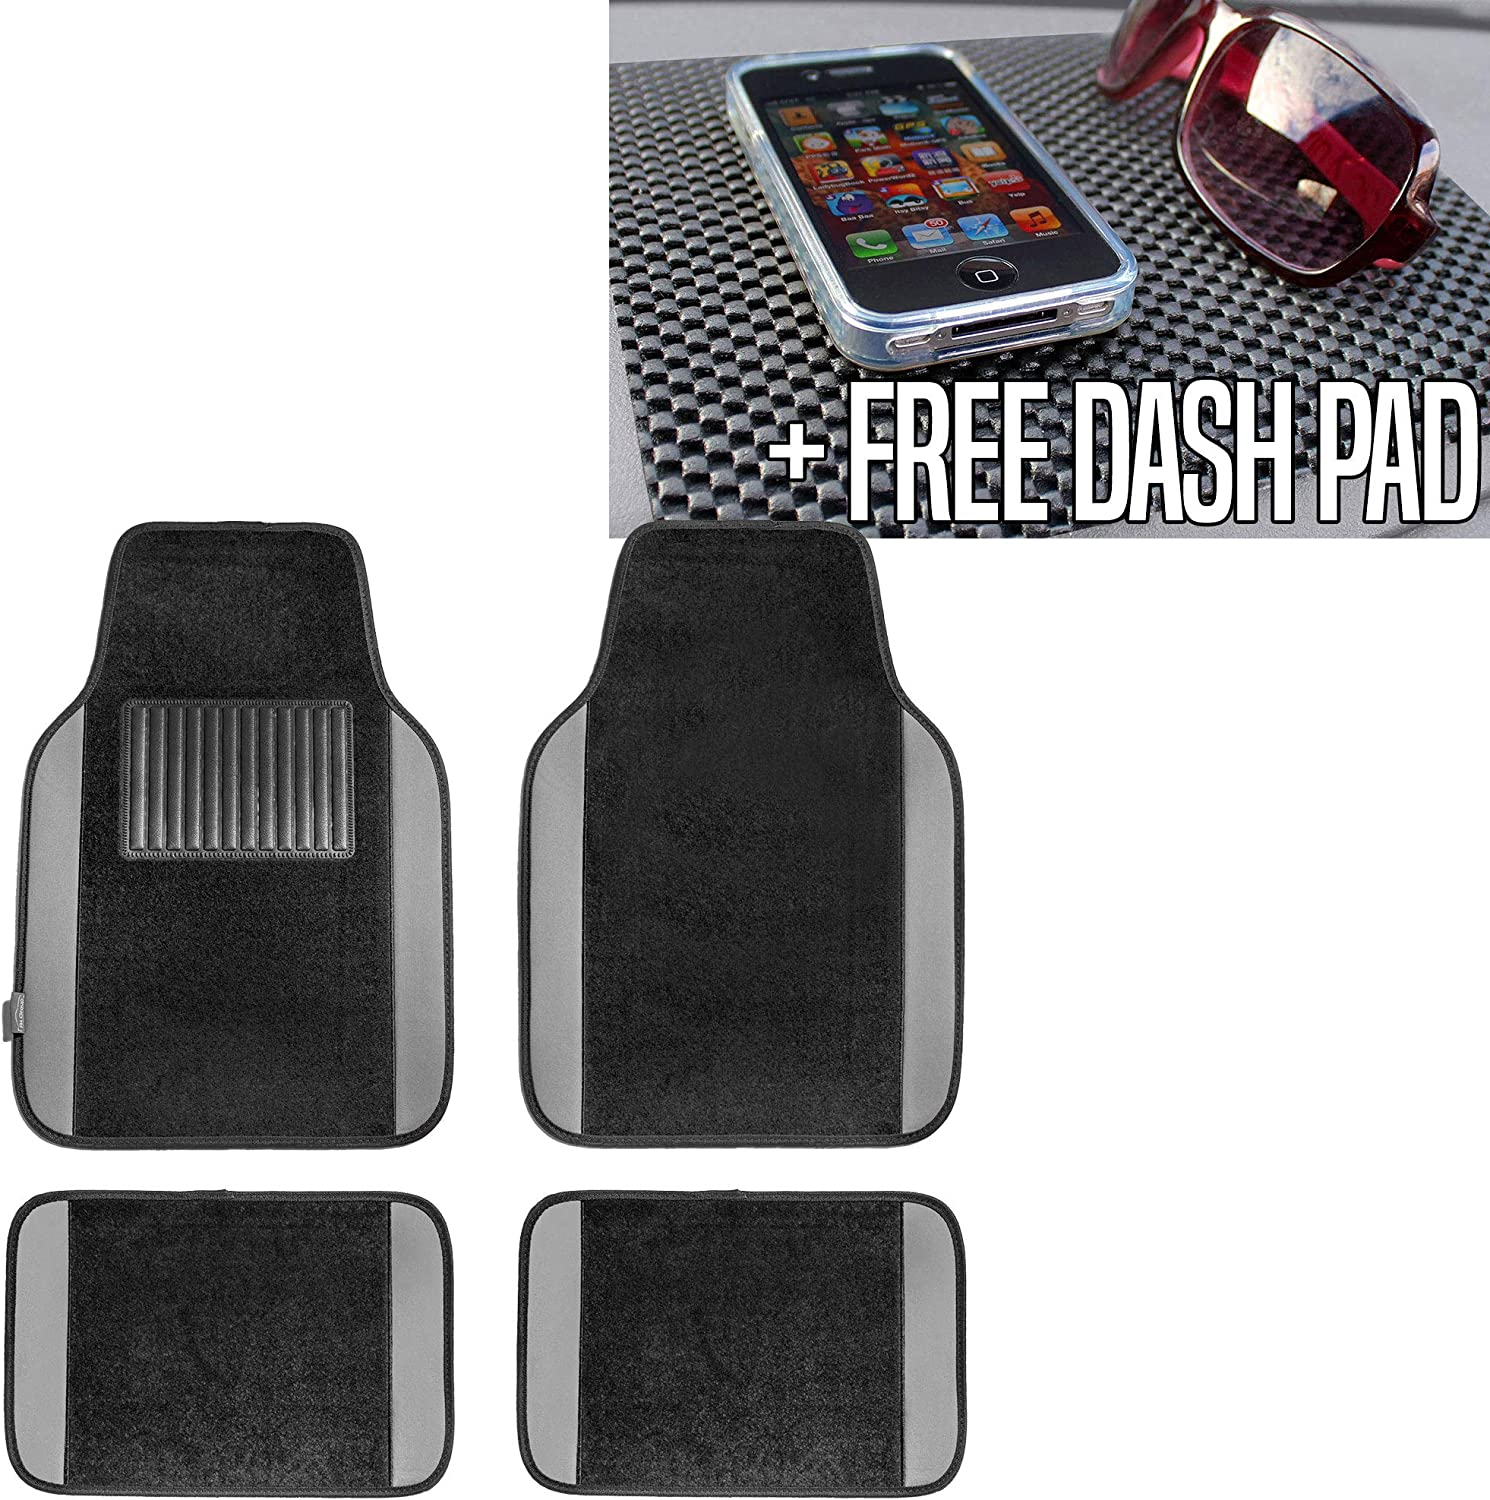 TLH Carpet Floor Mats with Colored Trim, Gray Color w/Black Dash Pad